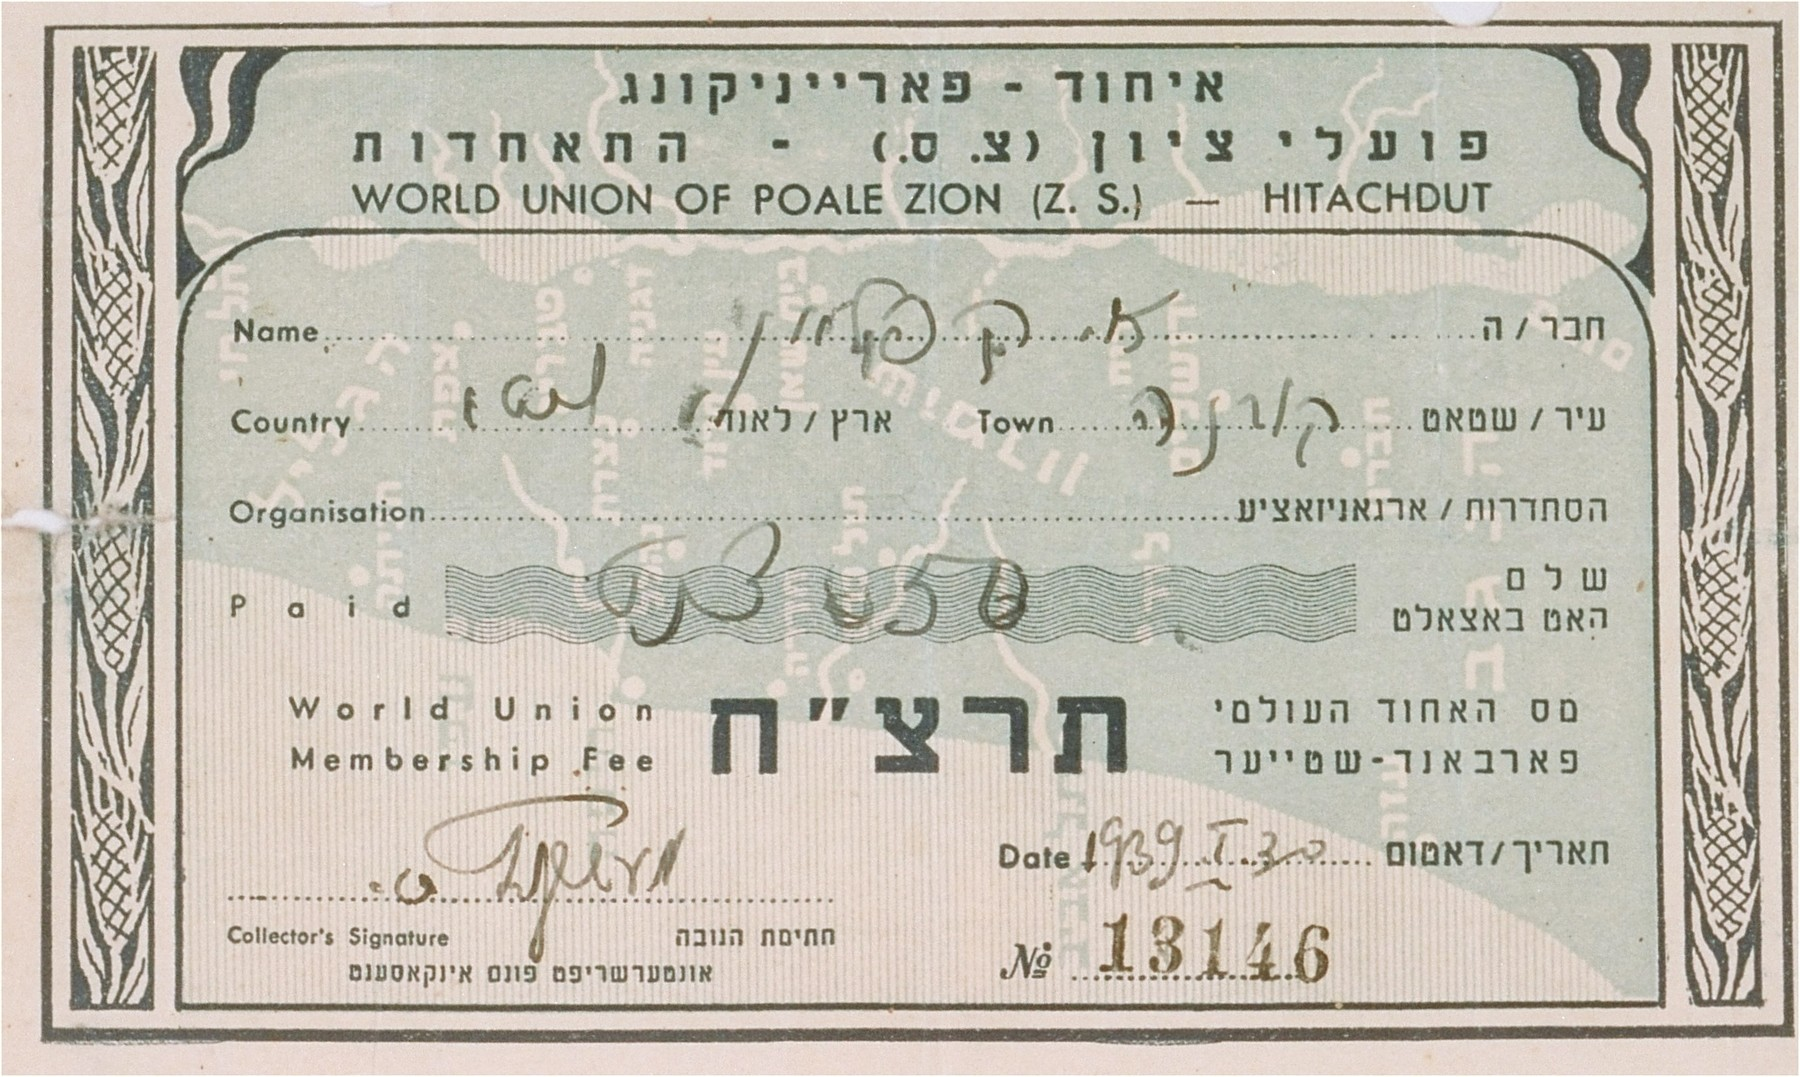 Membership card in the World Union of Poale Zion - Hitachdut issued to Eliezer Kaplan of Kovno, Lithuania on January 30, 1939.